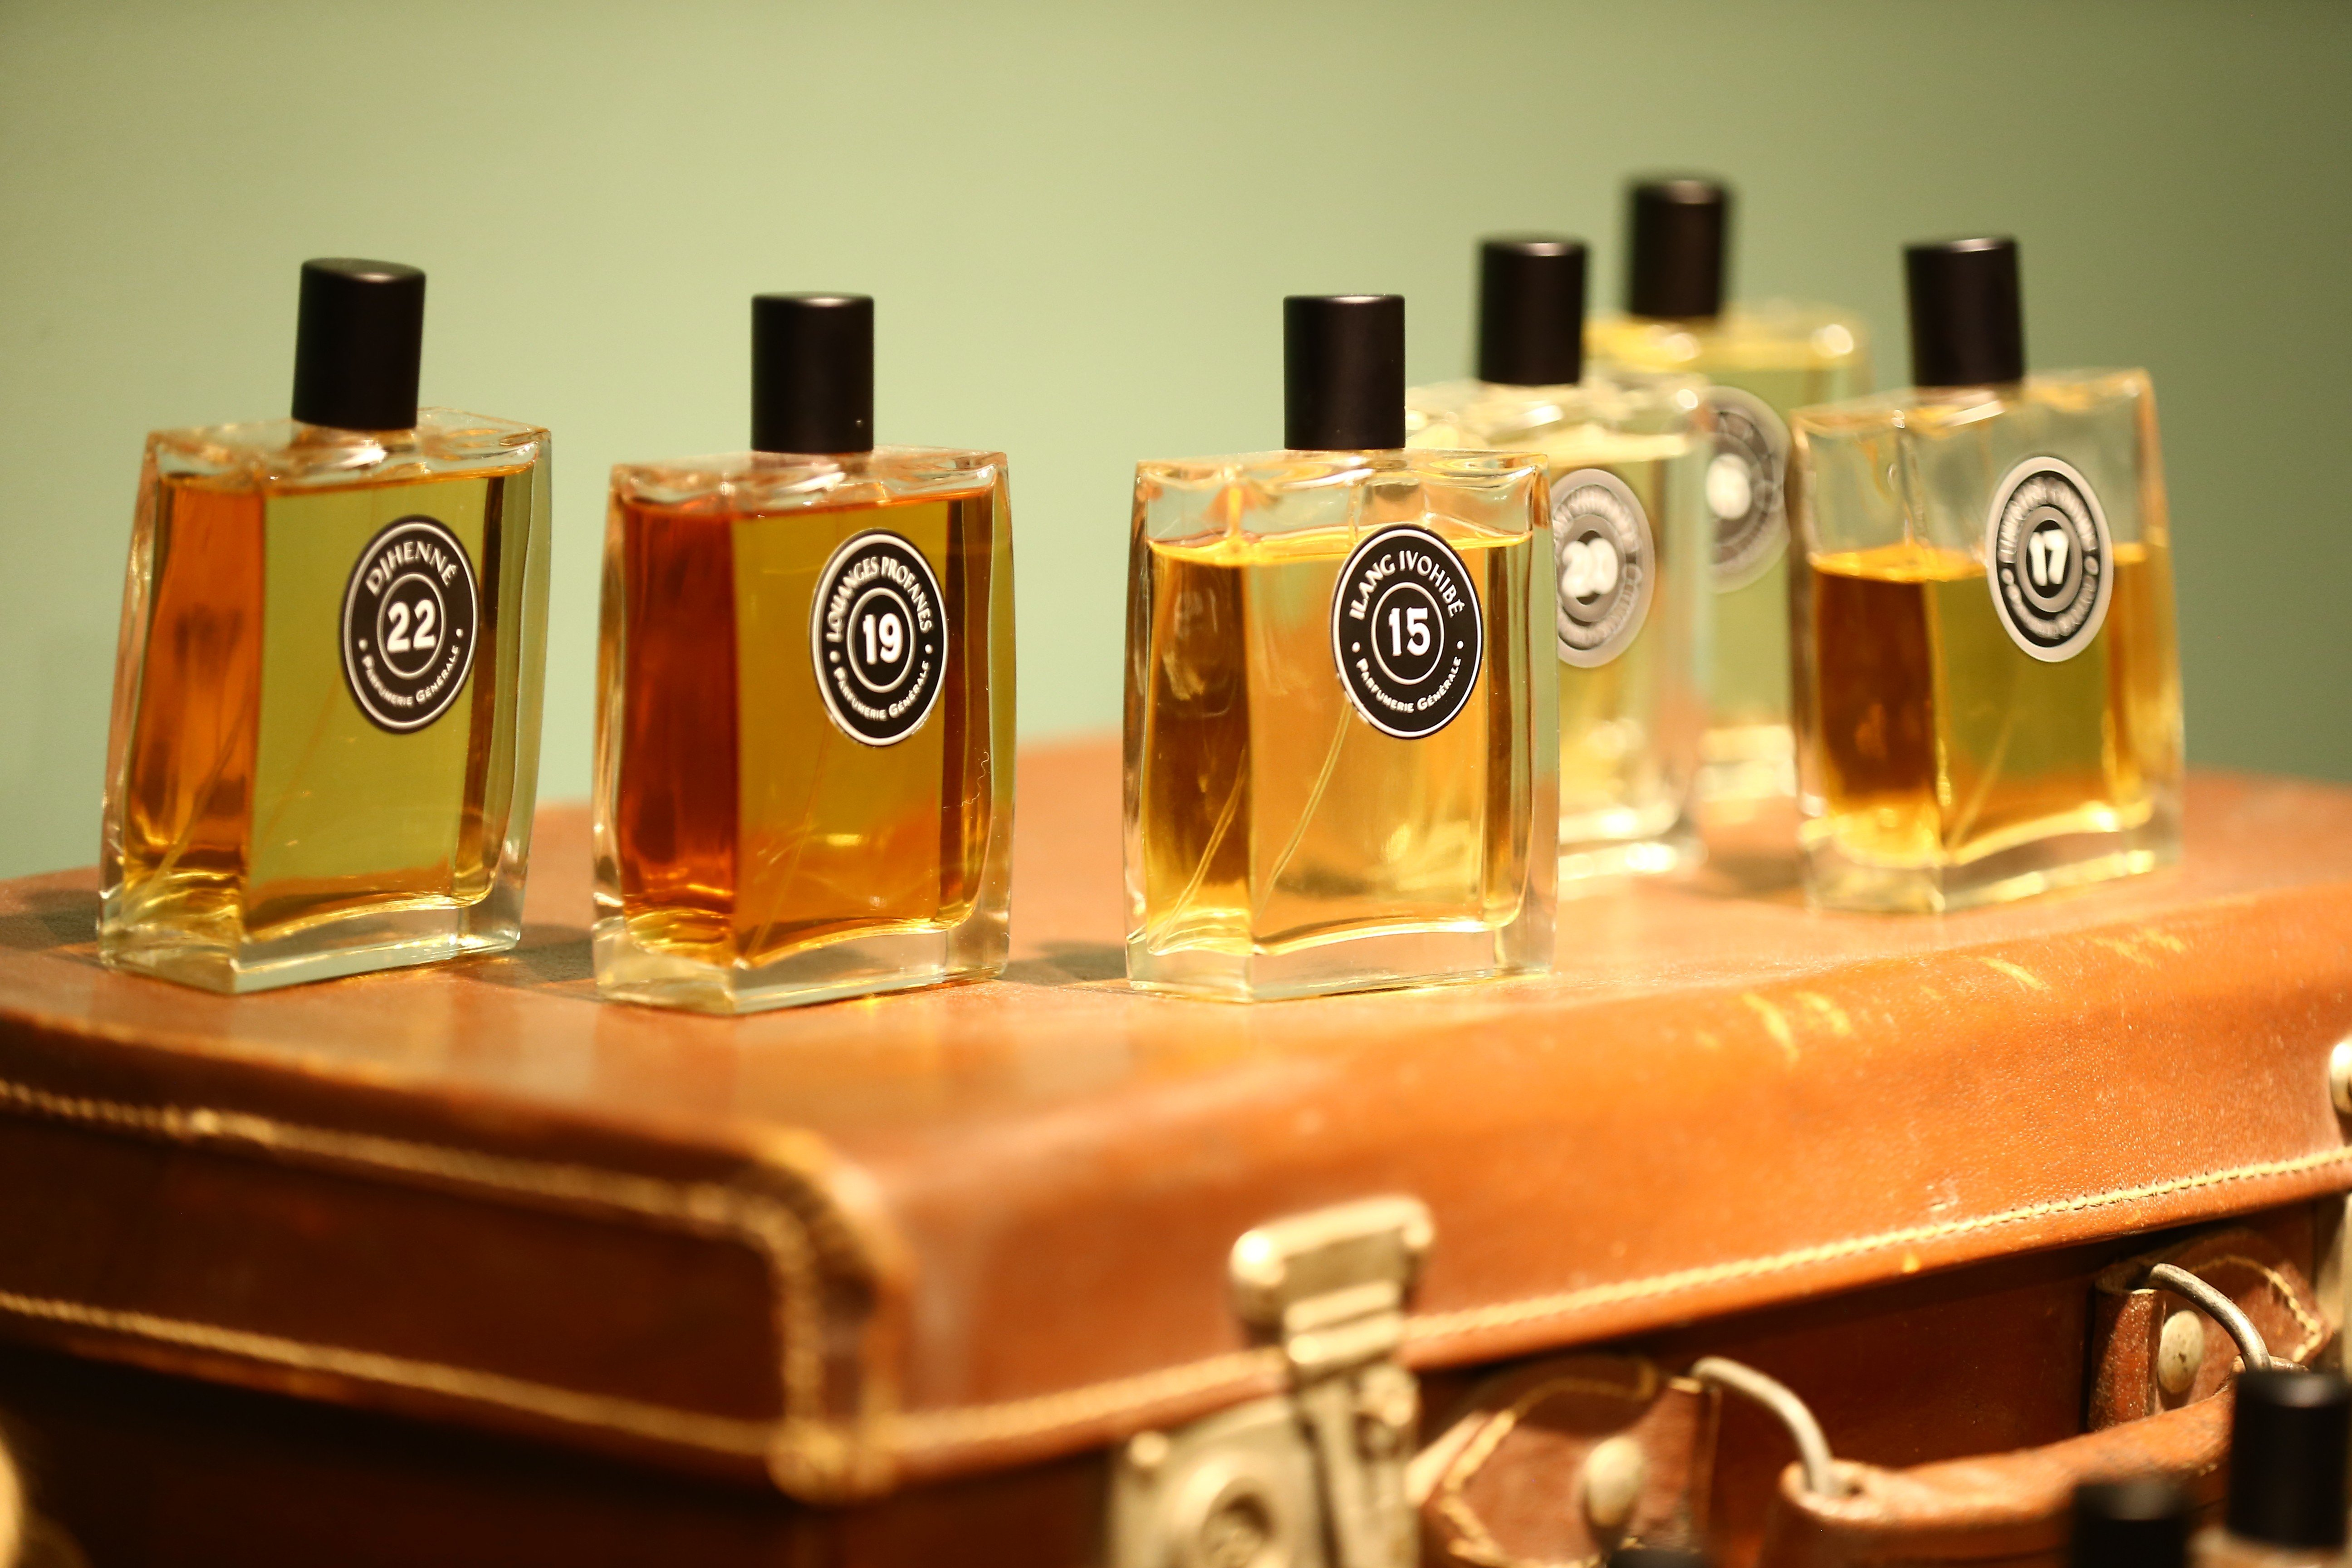 Asian interest in luxury fragrances growing, niche perfumer says